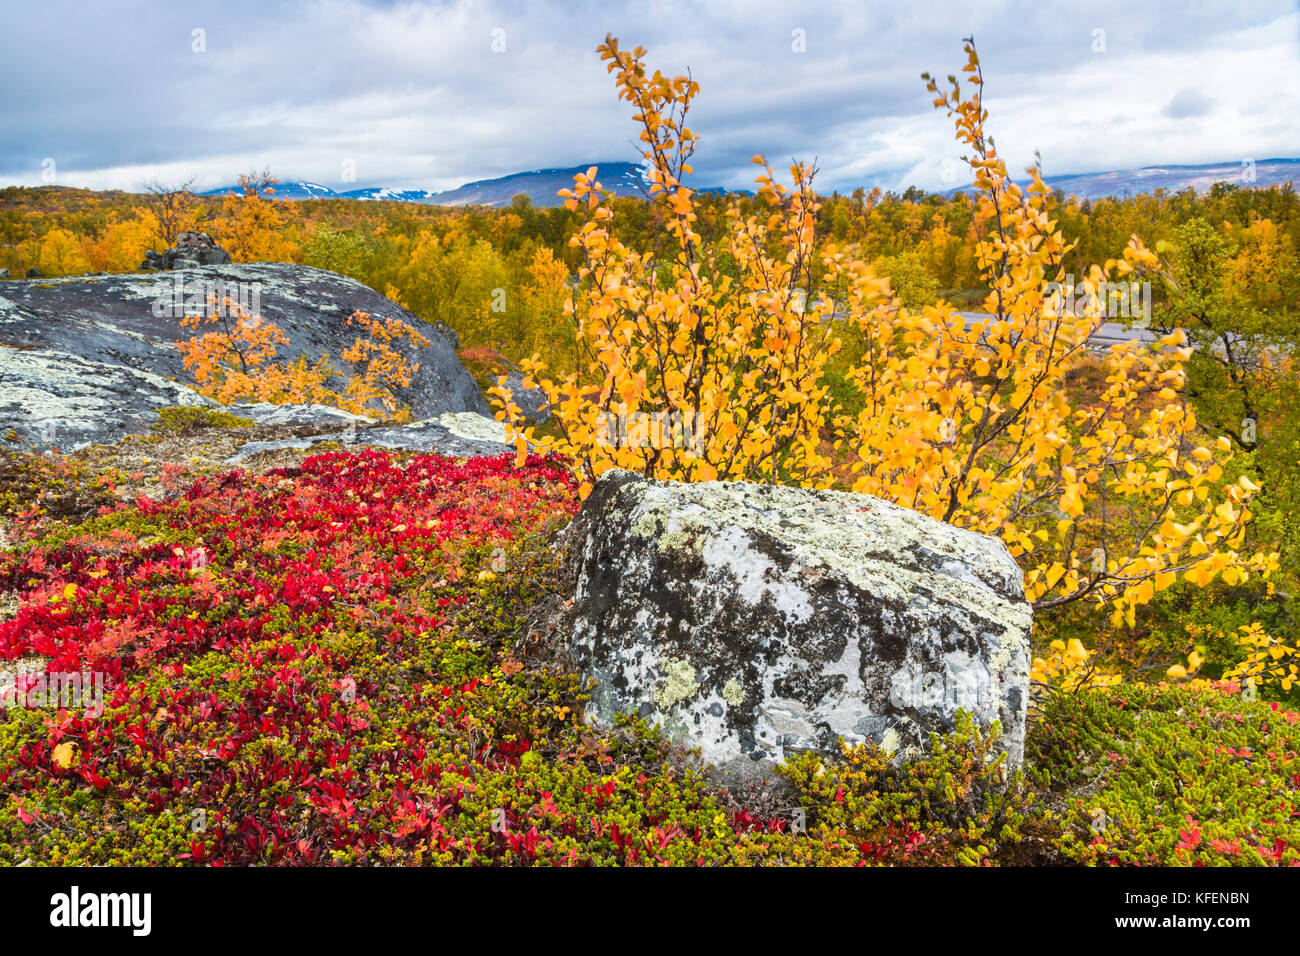 Autumn landscape with yellow birch trees and a mountain in the background, and alpine bearberris in foreground,  Kiruna County, Swedish Landscape, Swe Stock Photo